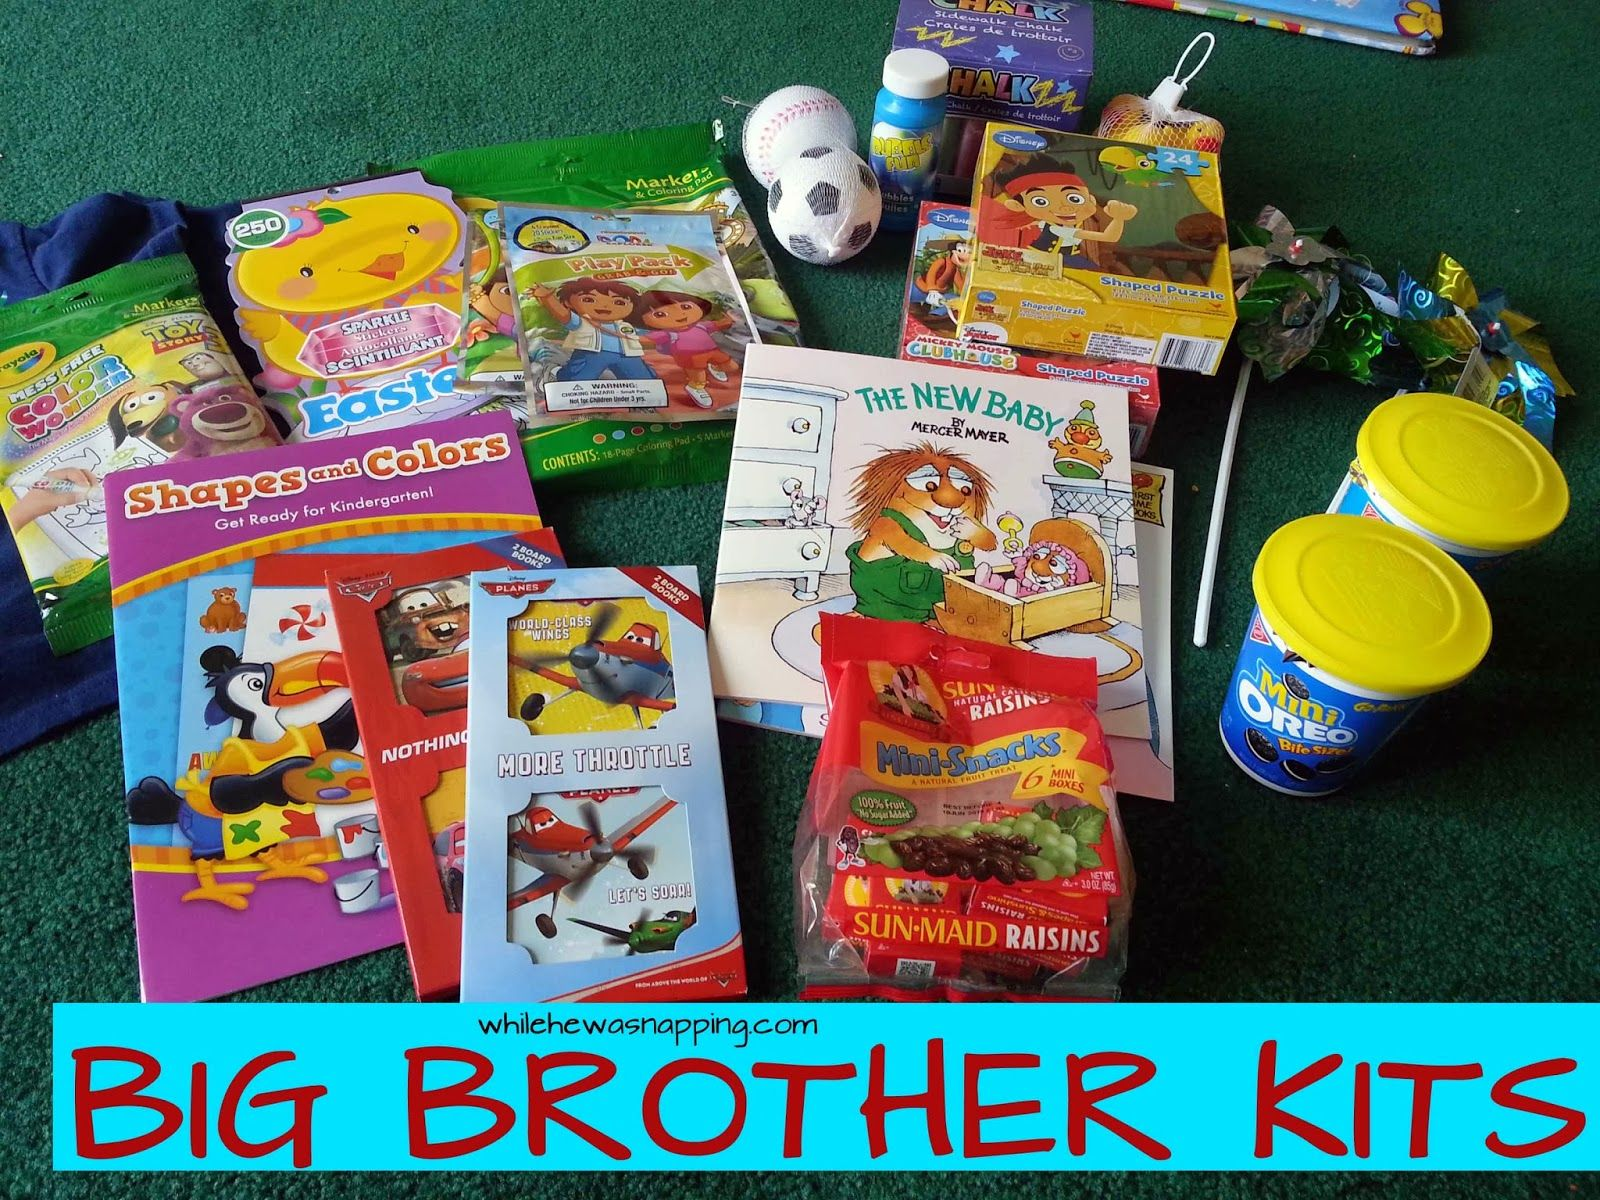 Baby Gifts For Big Brother : Big sibling kits from the baby brother kit and